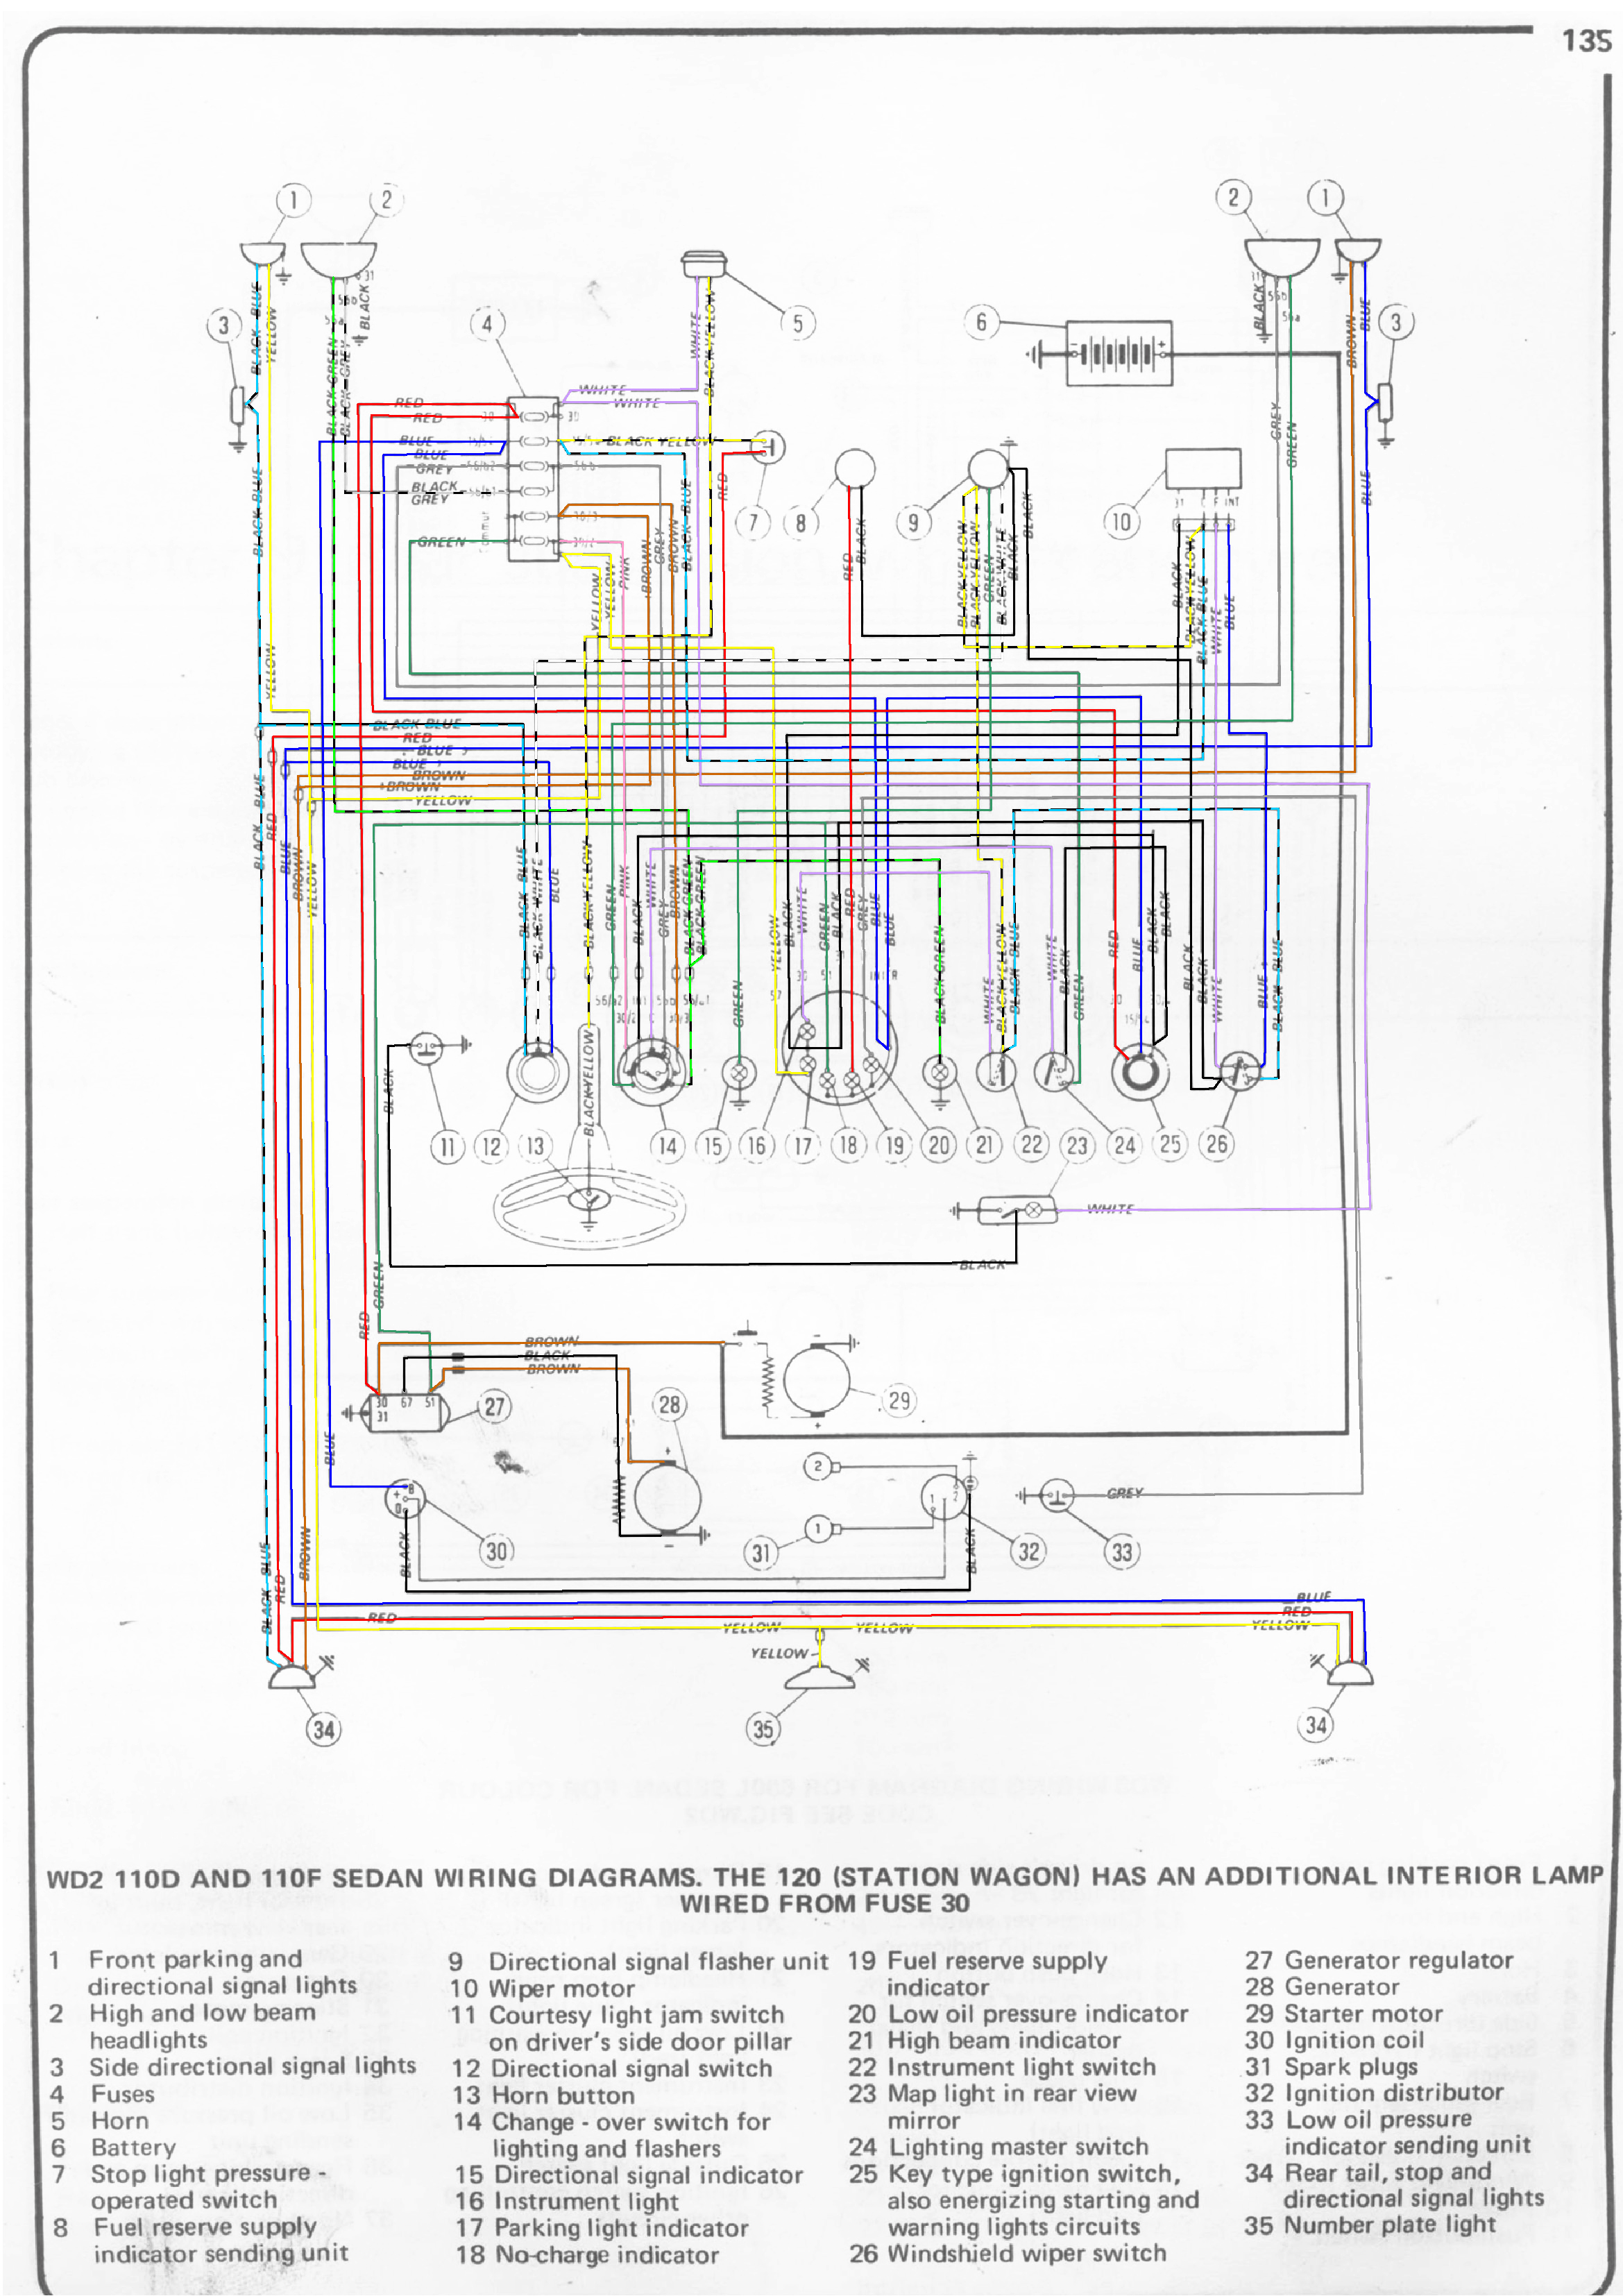 small resolution of fiat abarth wiring diagram wiring diagram todays chevrolet volt wiring diagram 2012 fiat 500 wiring diagram